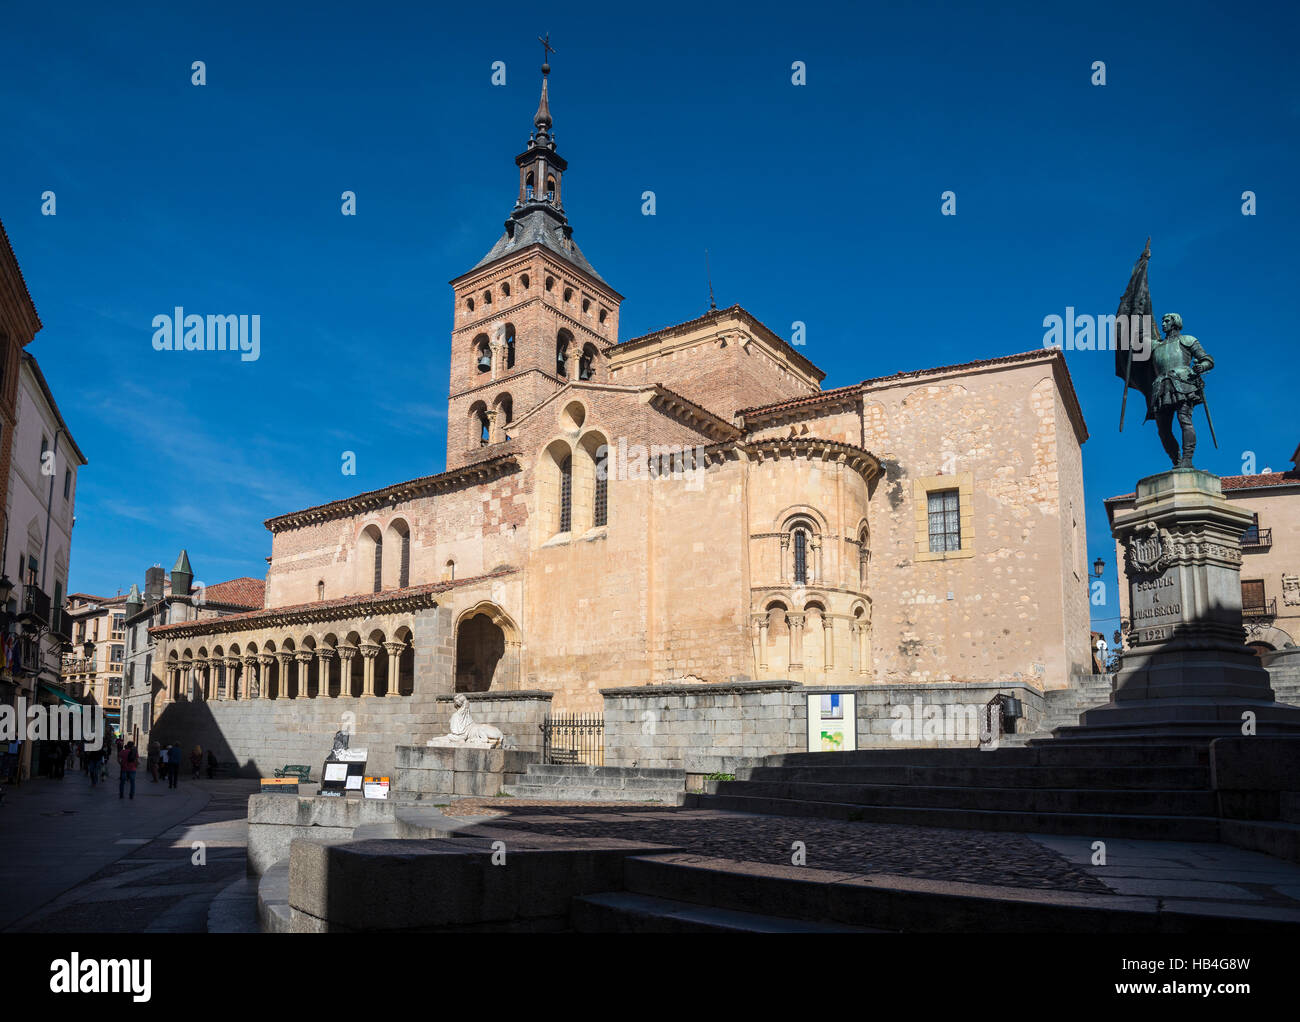 The romanesque Church of San Martin with its mudejar bellfry, in the Plaza Medina del Campo, Segovia, Spain - Stock Image